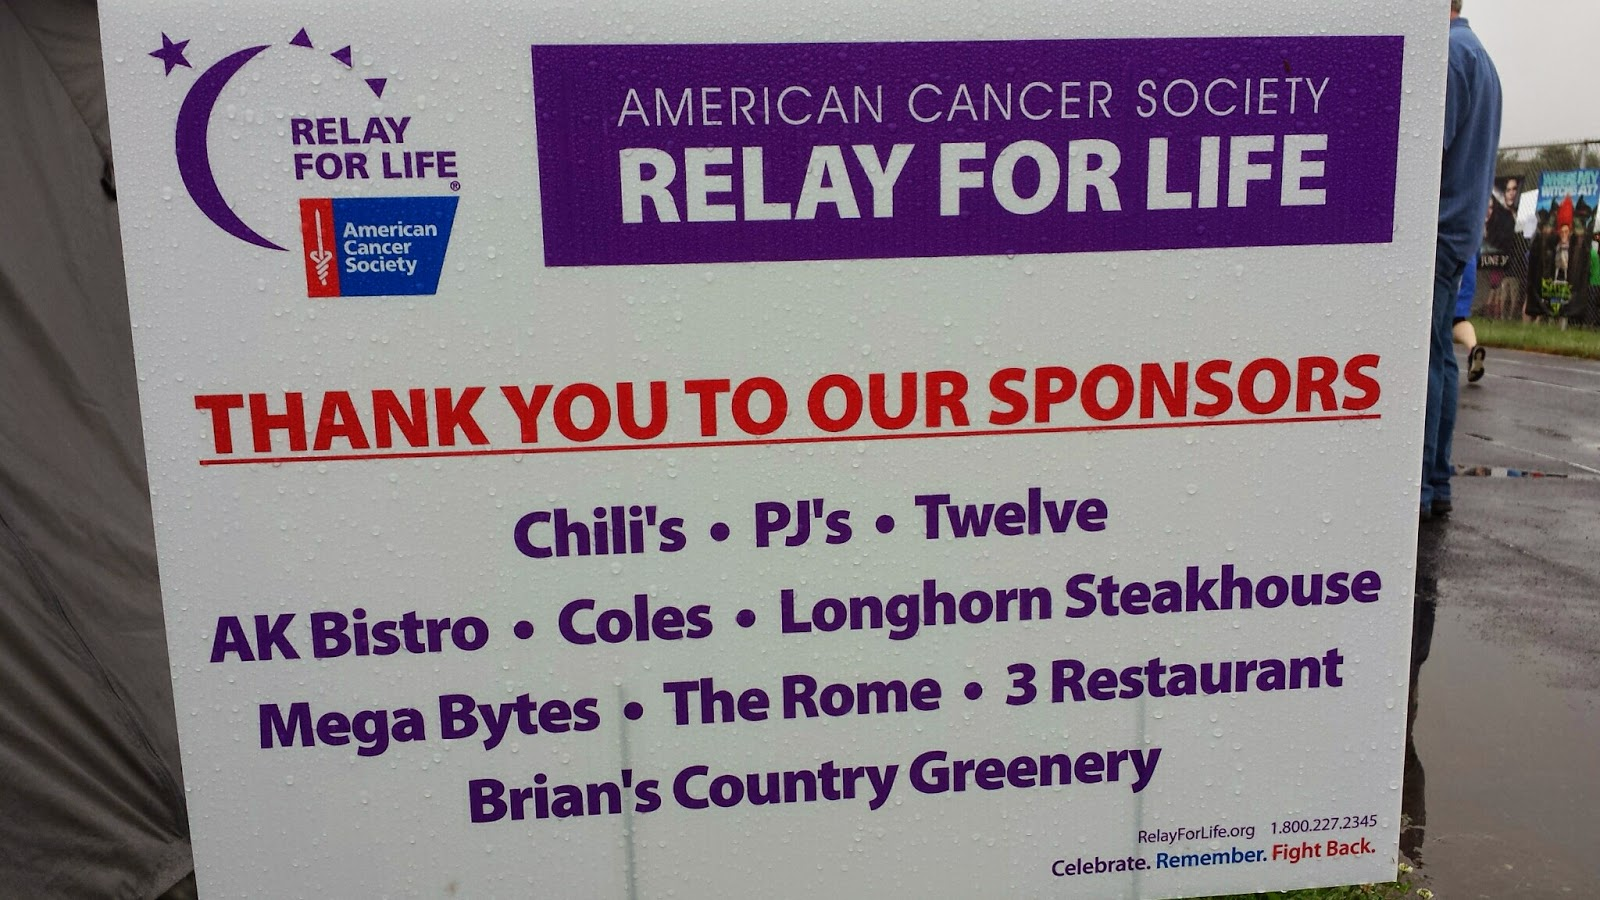 thanks to all the sponsors who helped!